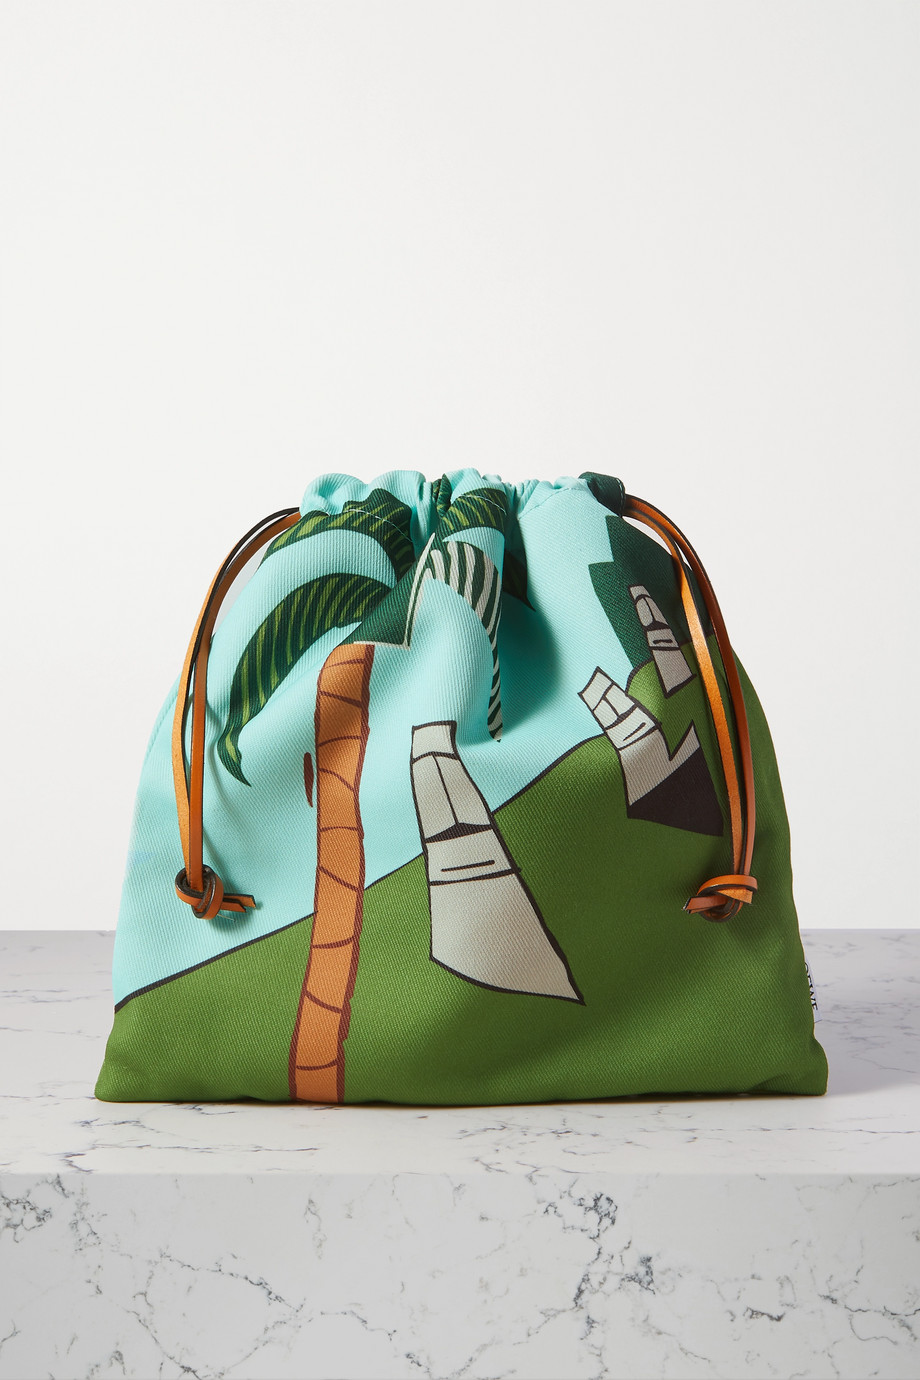 Loewe + Ken Price Easter Island leather-trimmed printed canvas pouch